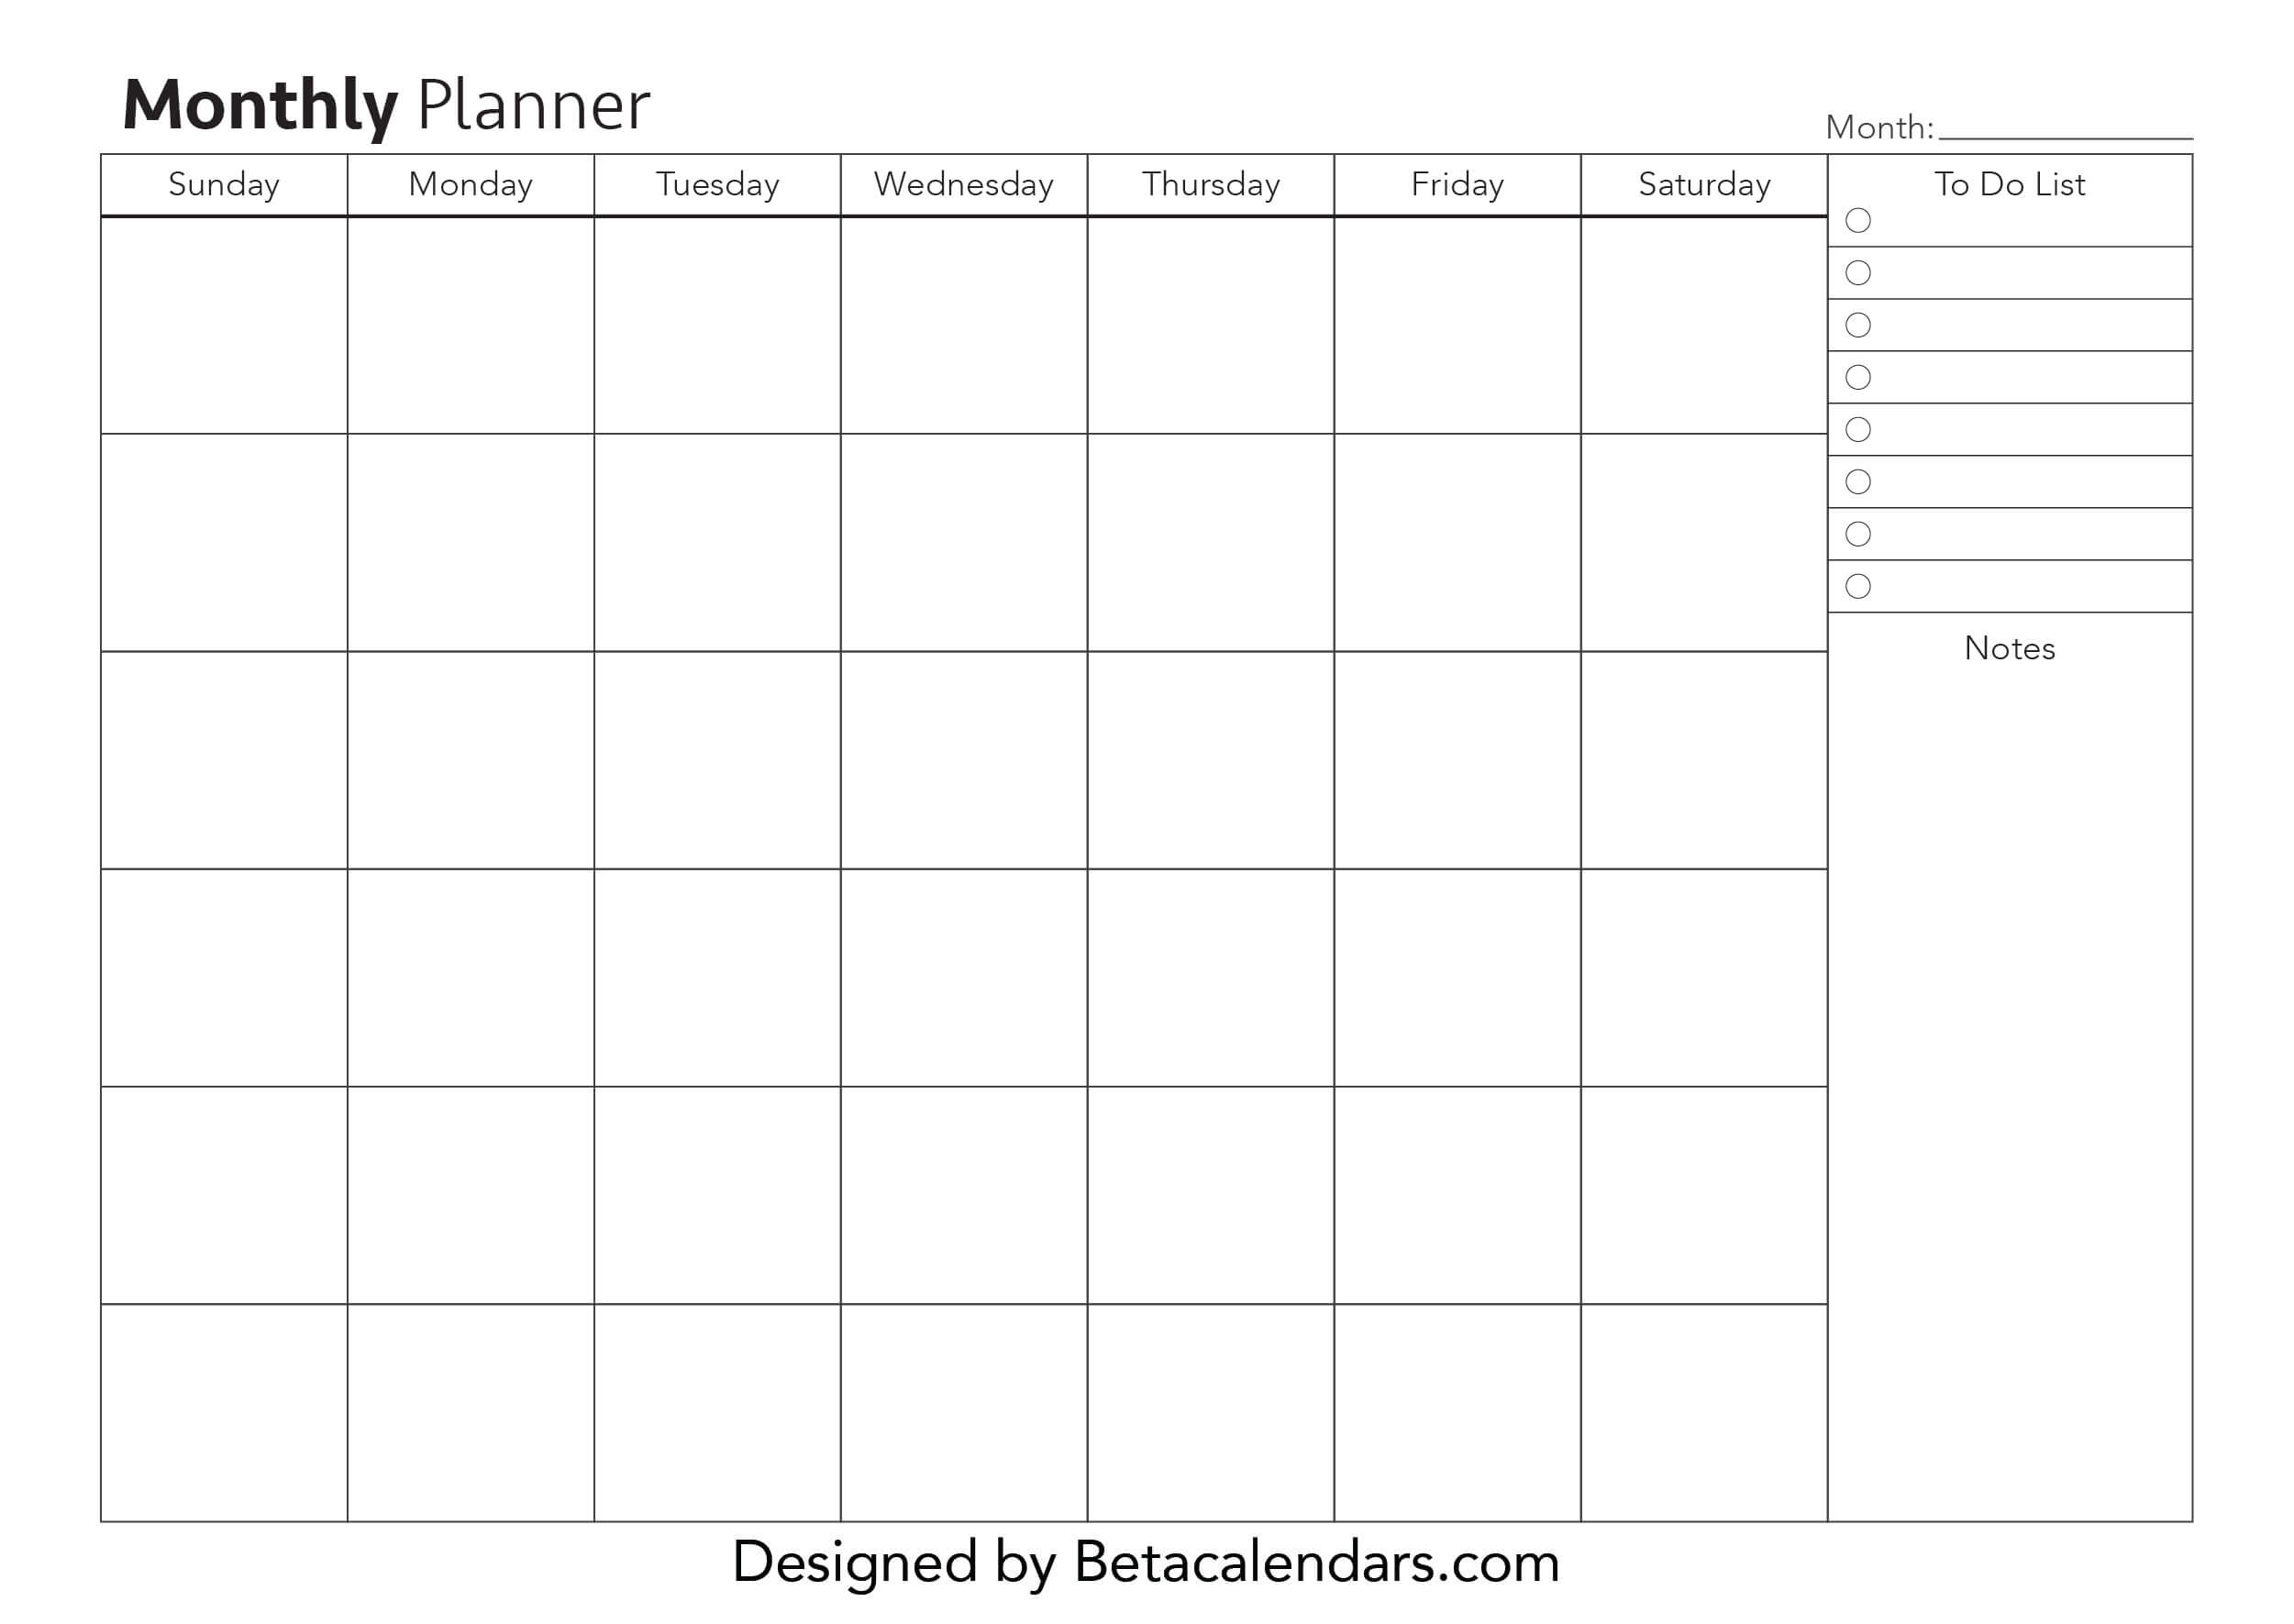 Free Printable Monthly Planner - Beta Calendars